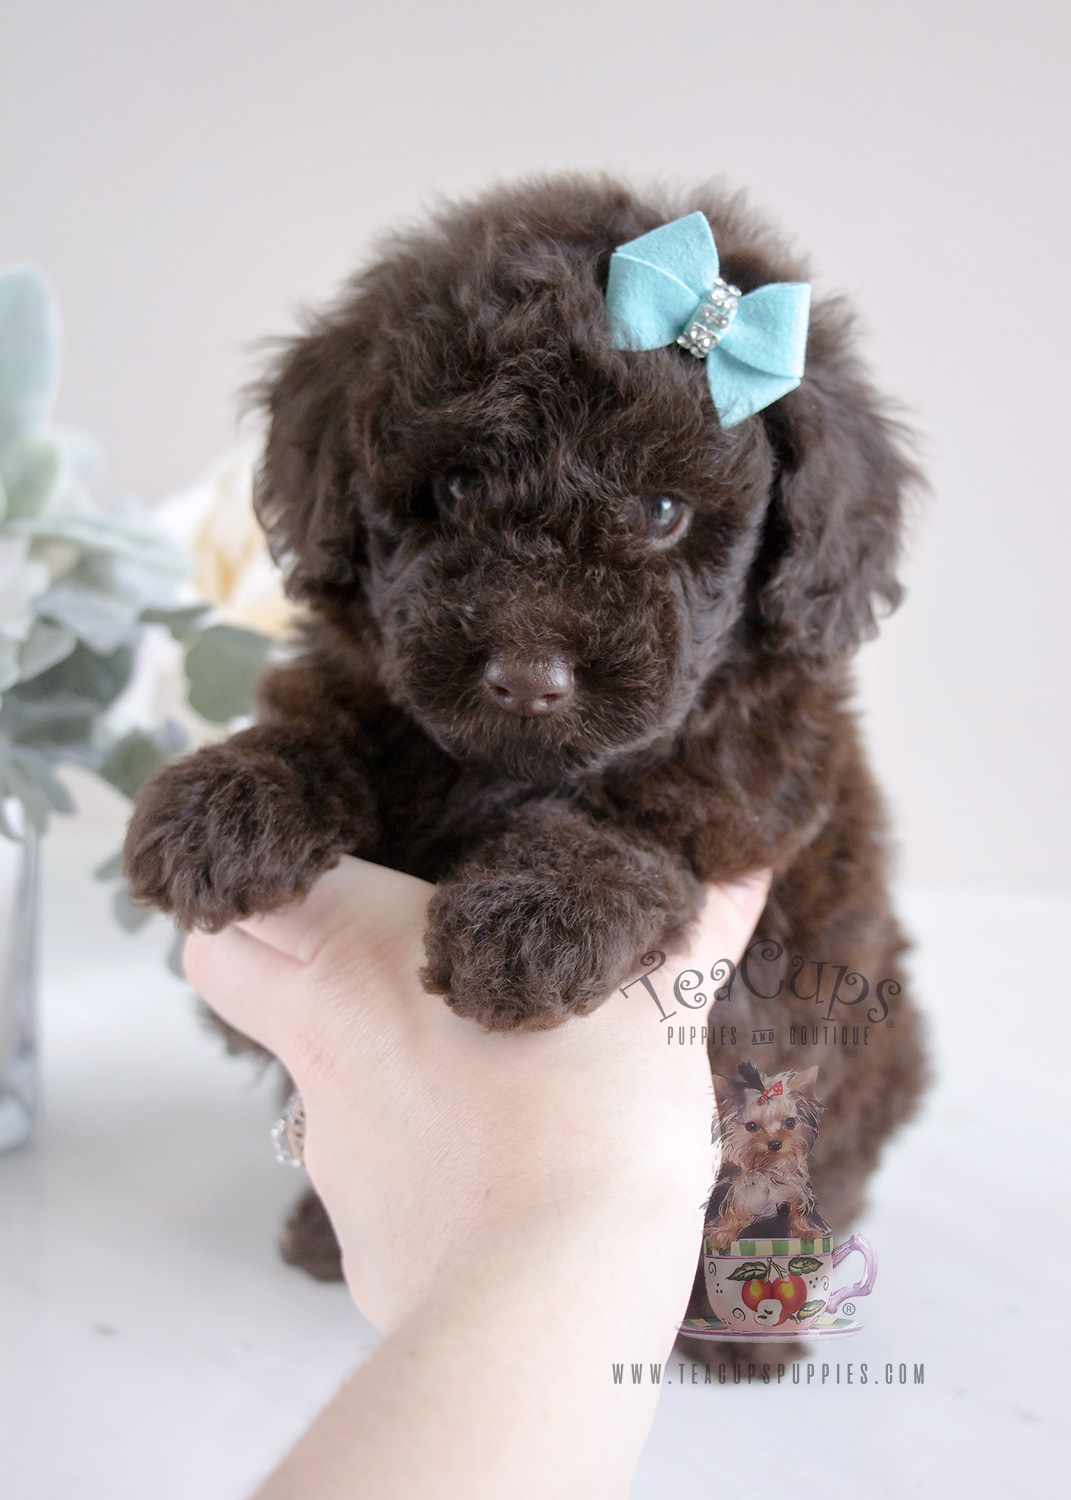 Poodle Puppy For Sale #060 Teacup Puppies Chocolate